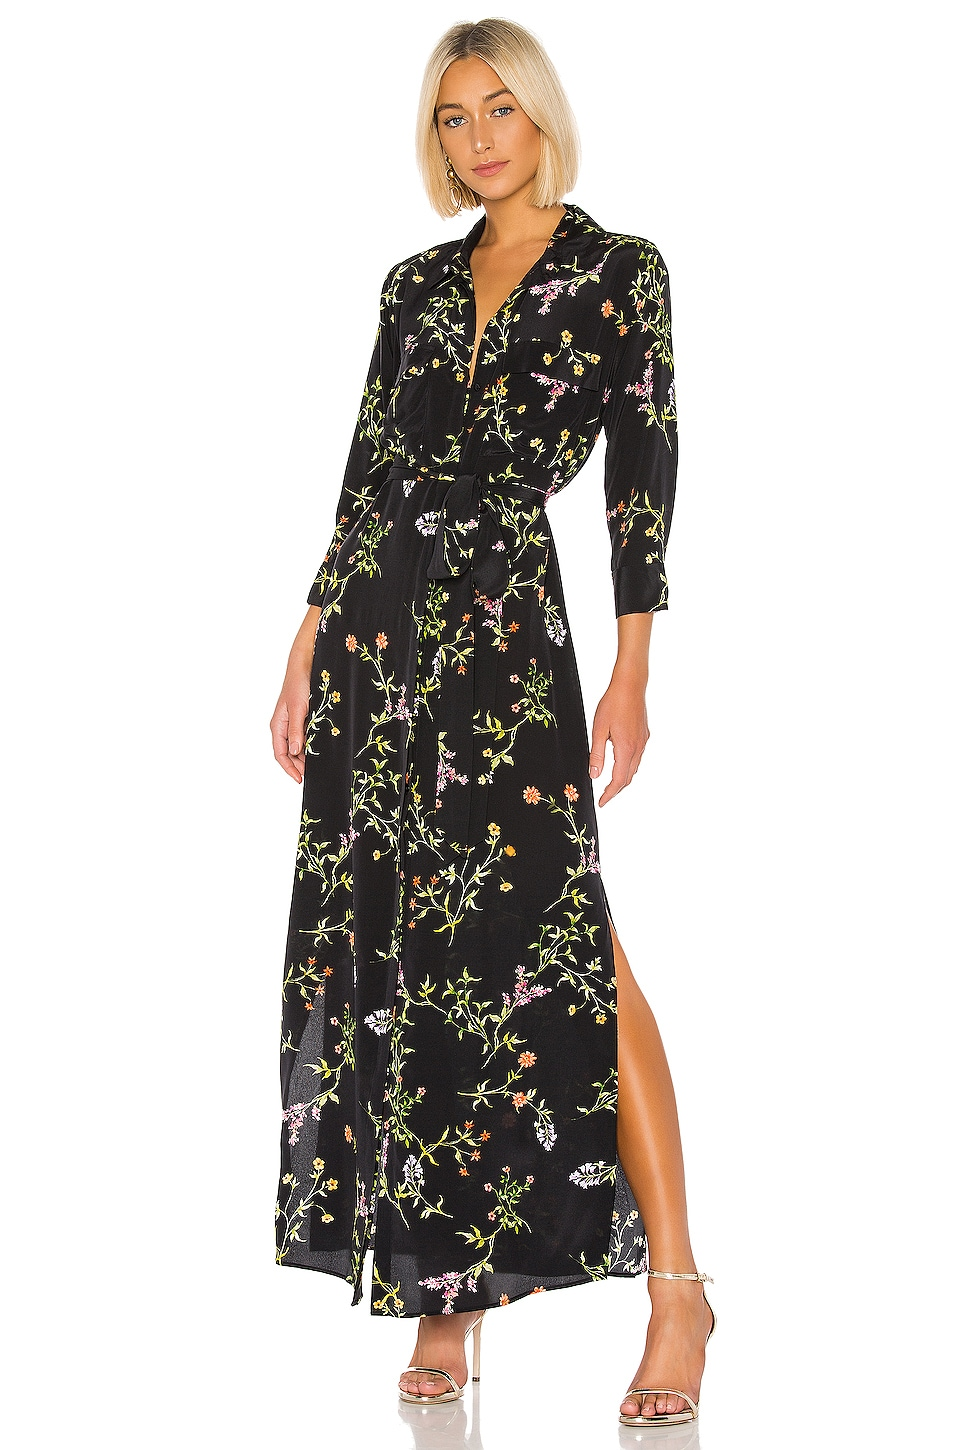 L'AGENCE Cameron Shirt Dress in Black Bloom Multi